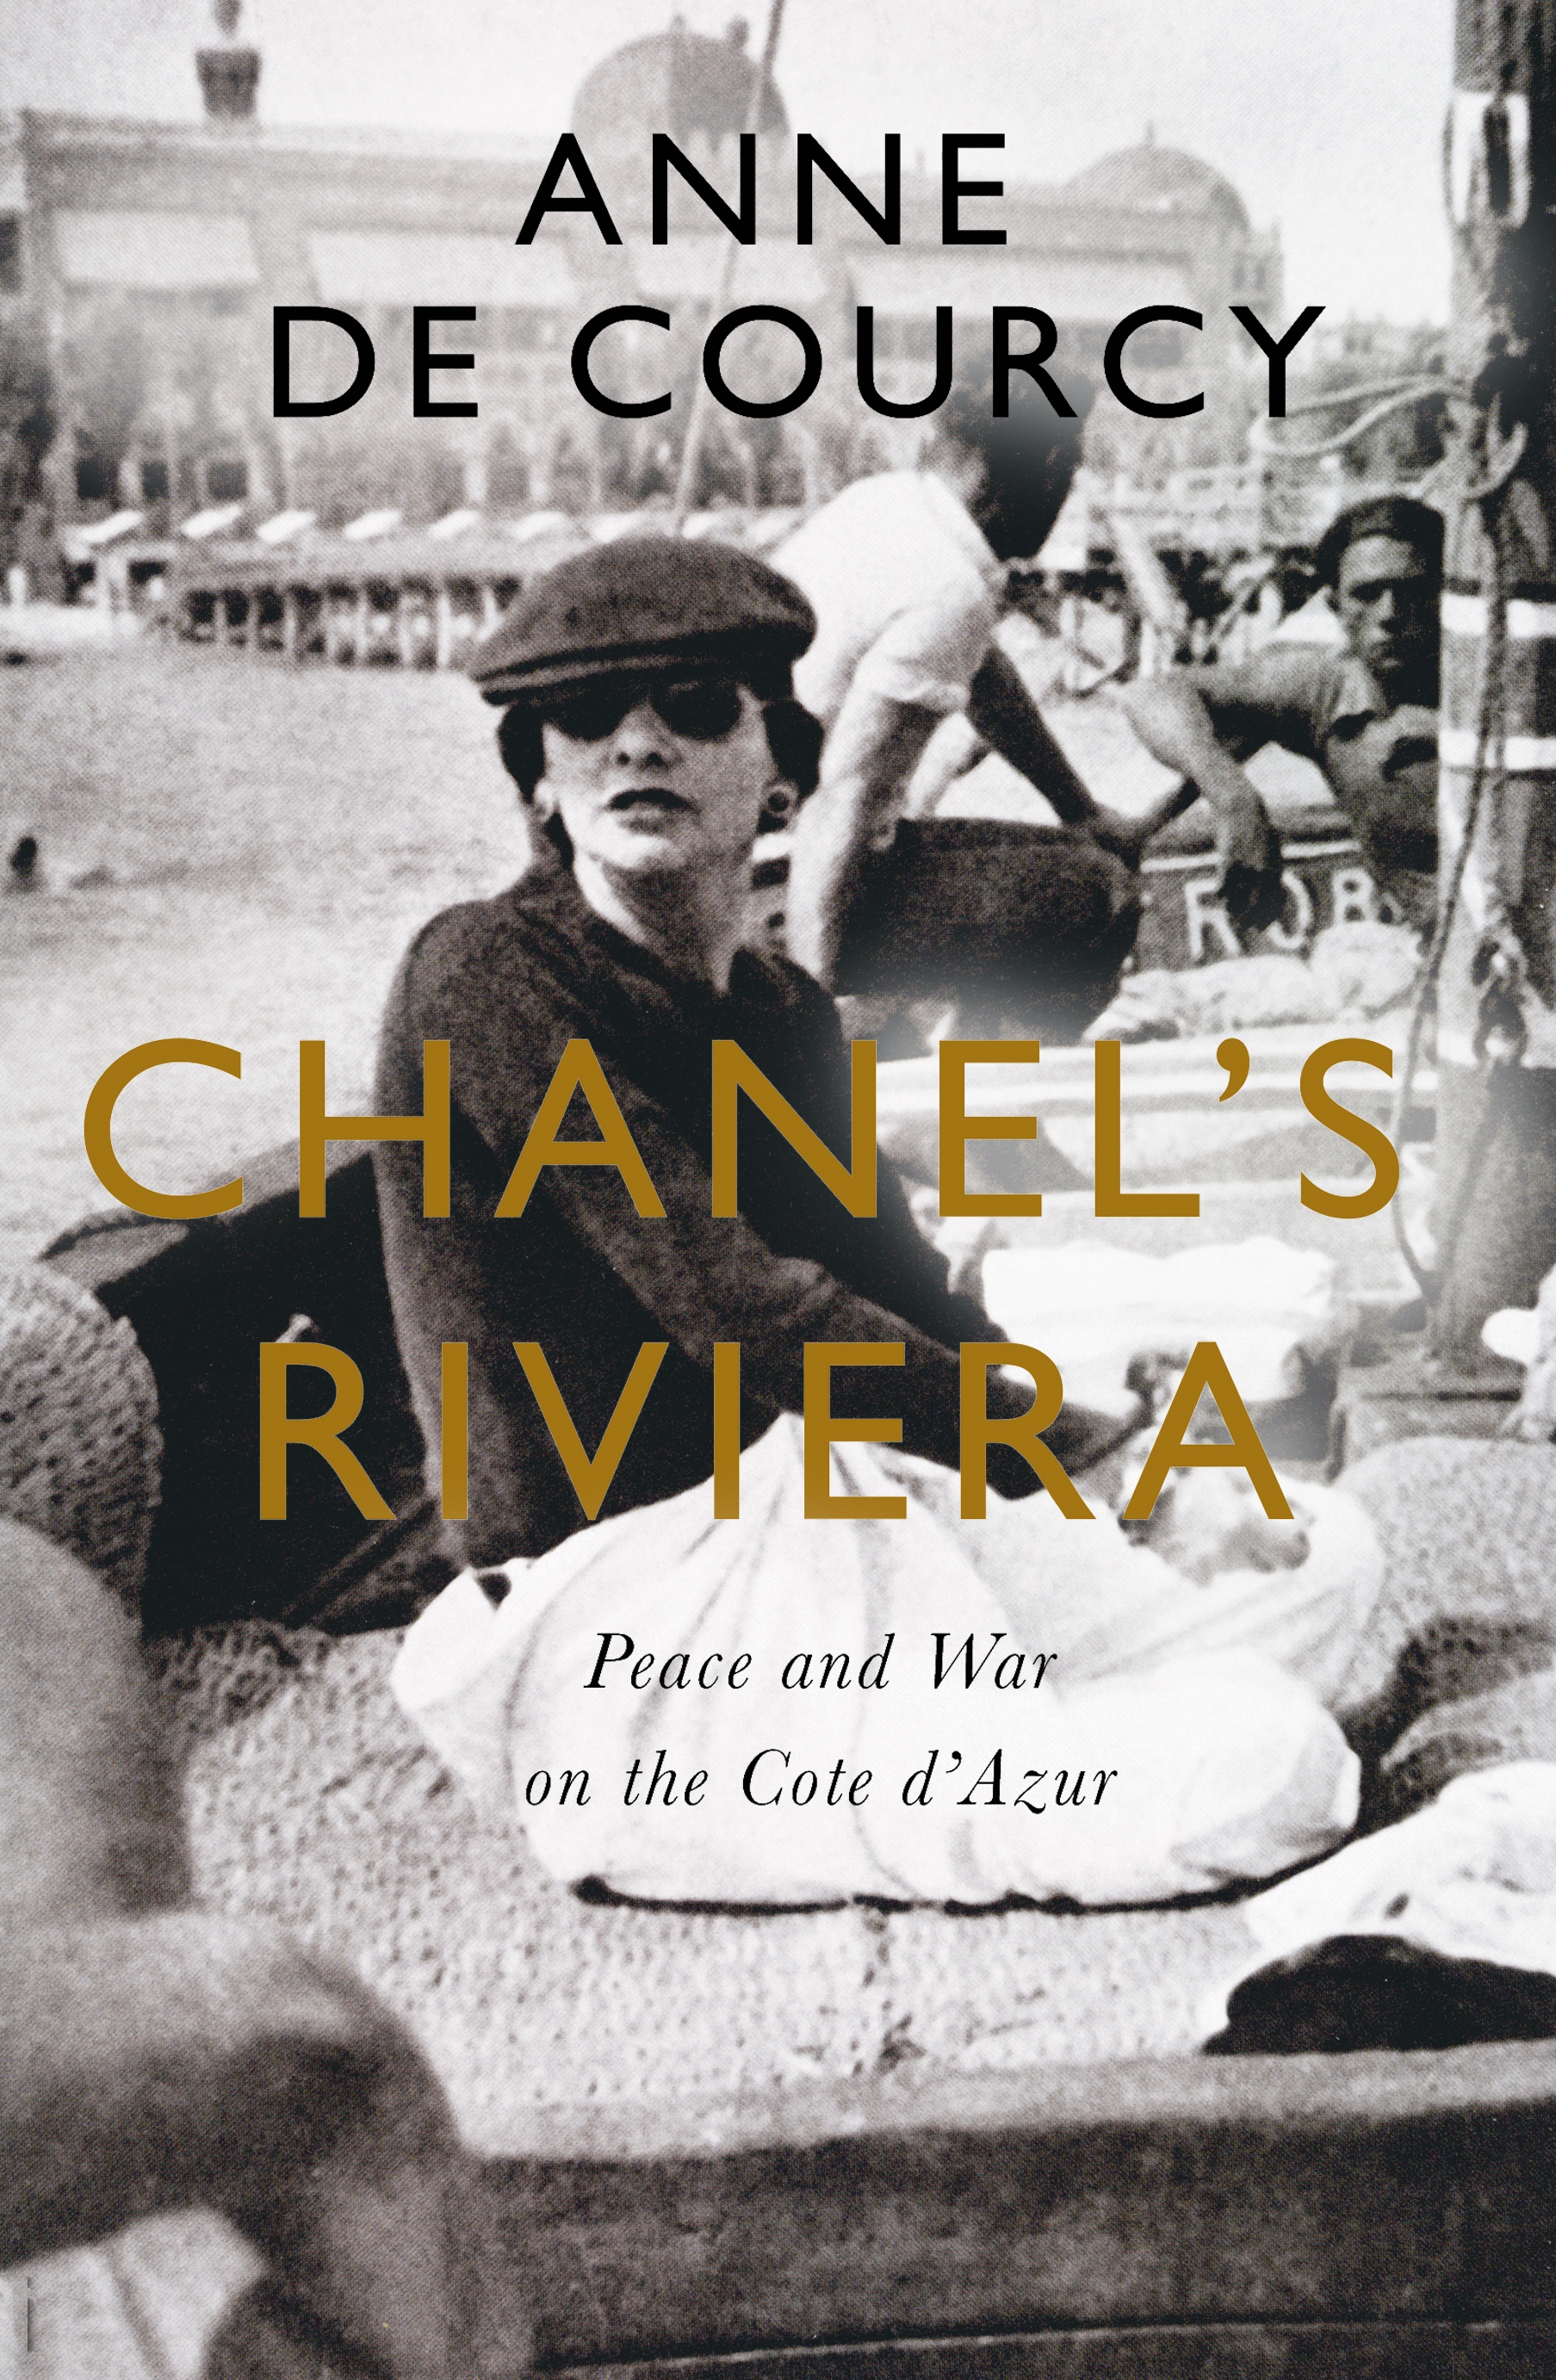 CHANEL'S RIVIERA  Biography, 304 pages Weidenfeld & Nicholson, June 2019  Far from worrying about the onset of war, in the spring of 1938 the burning question on the French Riviera was whether one should curtsey to the Duchess of Windsor. Few of those who had settled there thought much about what was going on in the rest of Europe. It was a golden, glamorous life, far removed from politics or conflict.  Featuring a sparkling cast of artists, writers and historical figures including Winston Churchill, Daisy Fellowes, Salvador Dalí, the Duke and Duchess of Windsor, Eileen Gray and Edith Wharton, with the enigmatic Coco Chanel at its heart, CHANEL'S RIVIERA is a captivating account of a period that saw some of the deepest extremes of luxury and terror in the whole of the twentieth century.  From Chanel's first summer at her Roquebrune villa La Pausa (in the later years with her German lover) amid the glamour of the pre-war parties and casinos in Antibes, Nice and Cannes to the horrors of evacuation and the displacement of thousands of families during the Second World War, CHANEL'S RIVIERA explores the fascinating world of the Cote d'Azur elite in the 1930s and 1940s. Enriched with much original research, it is social history that brings the lives